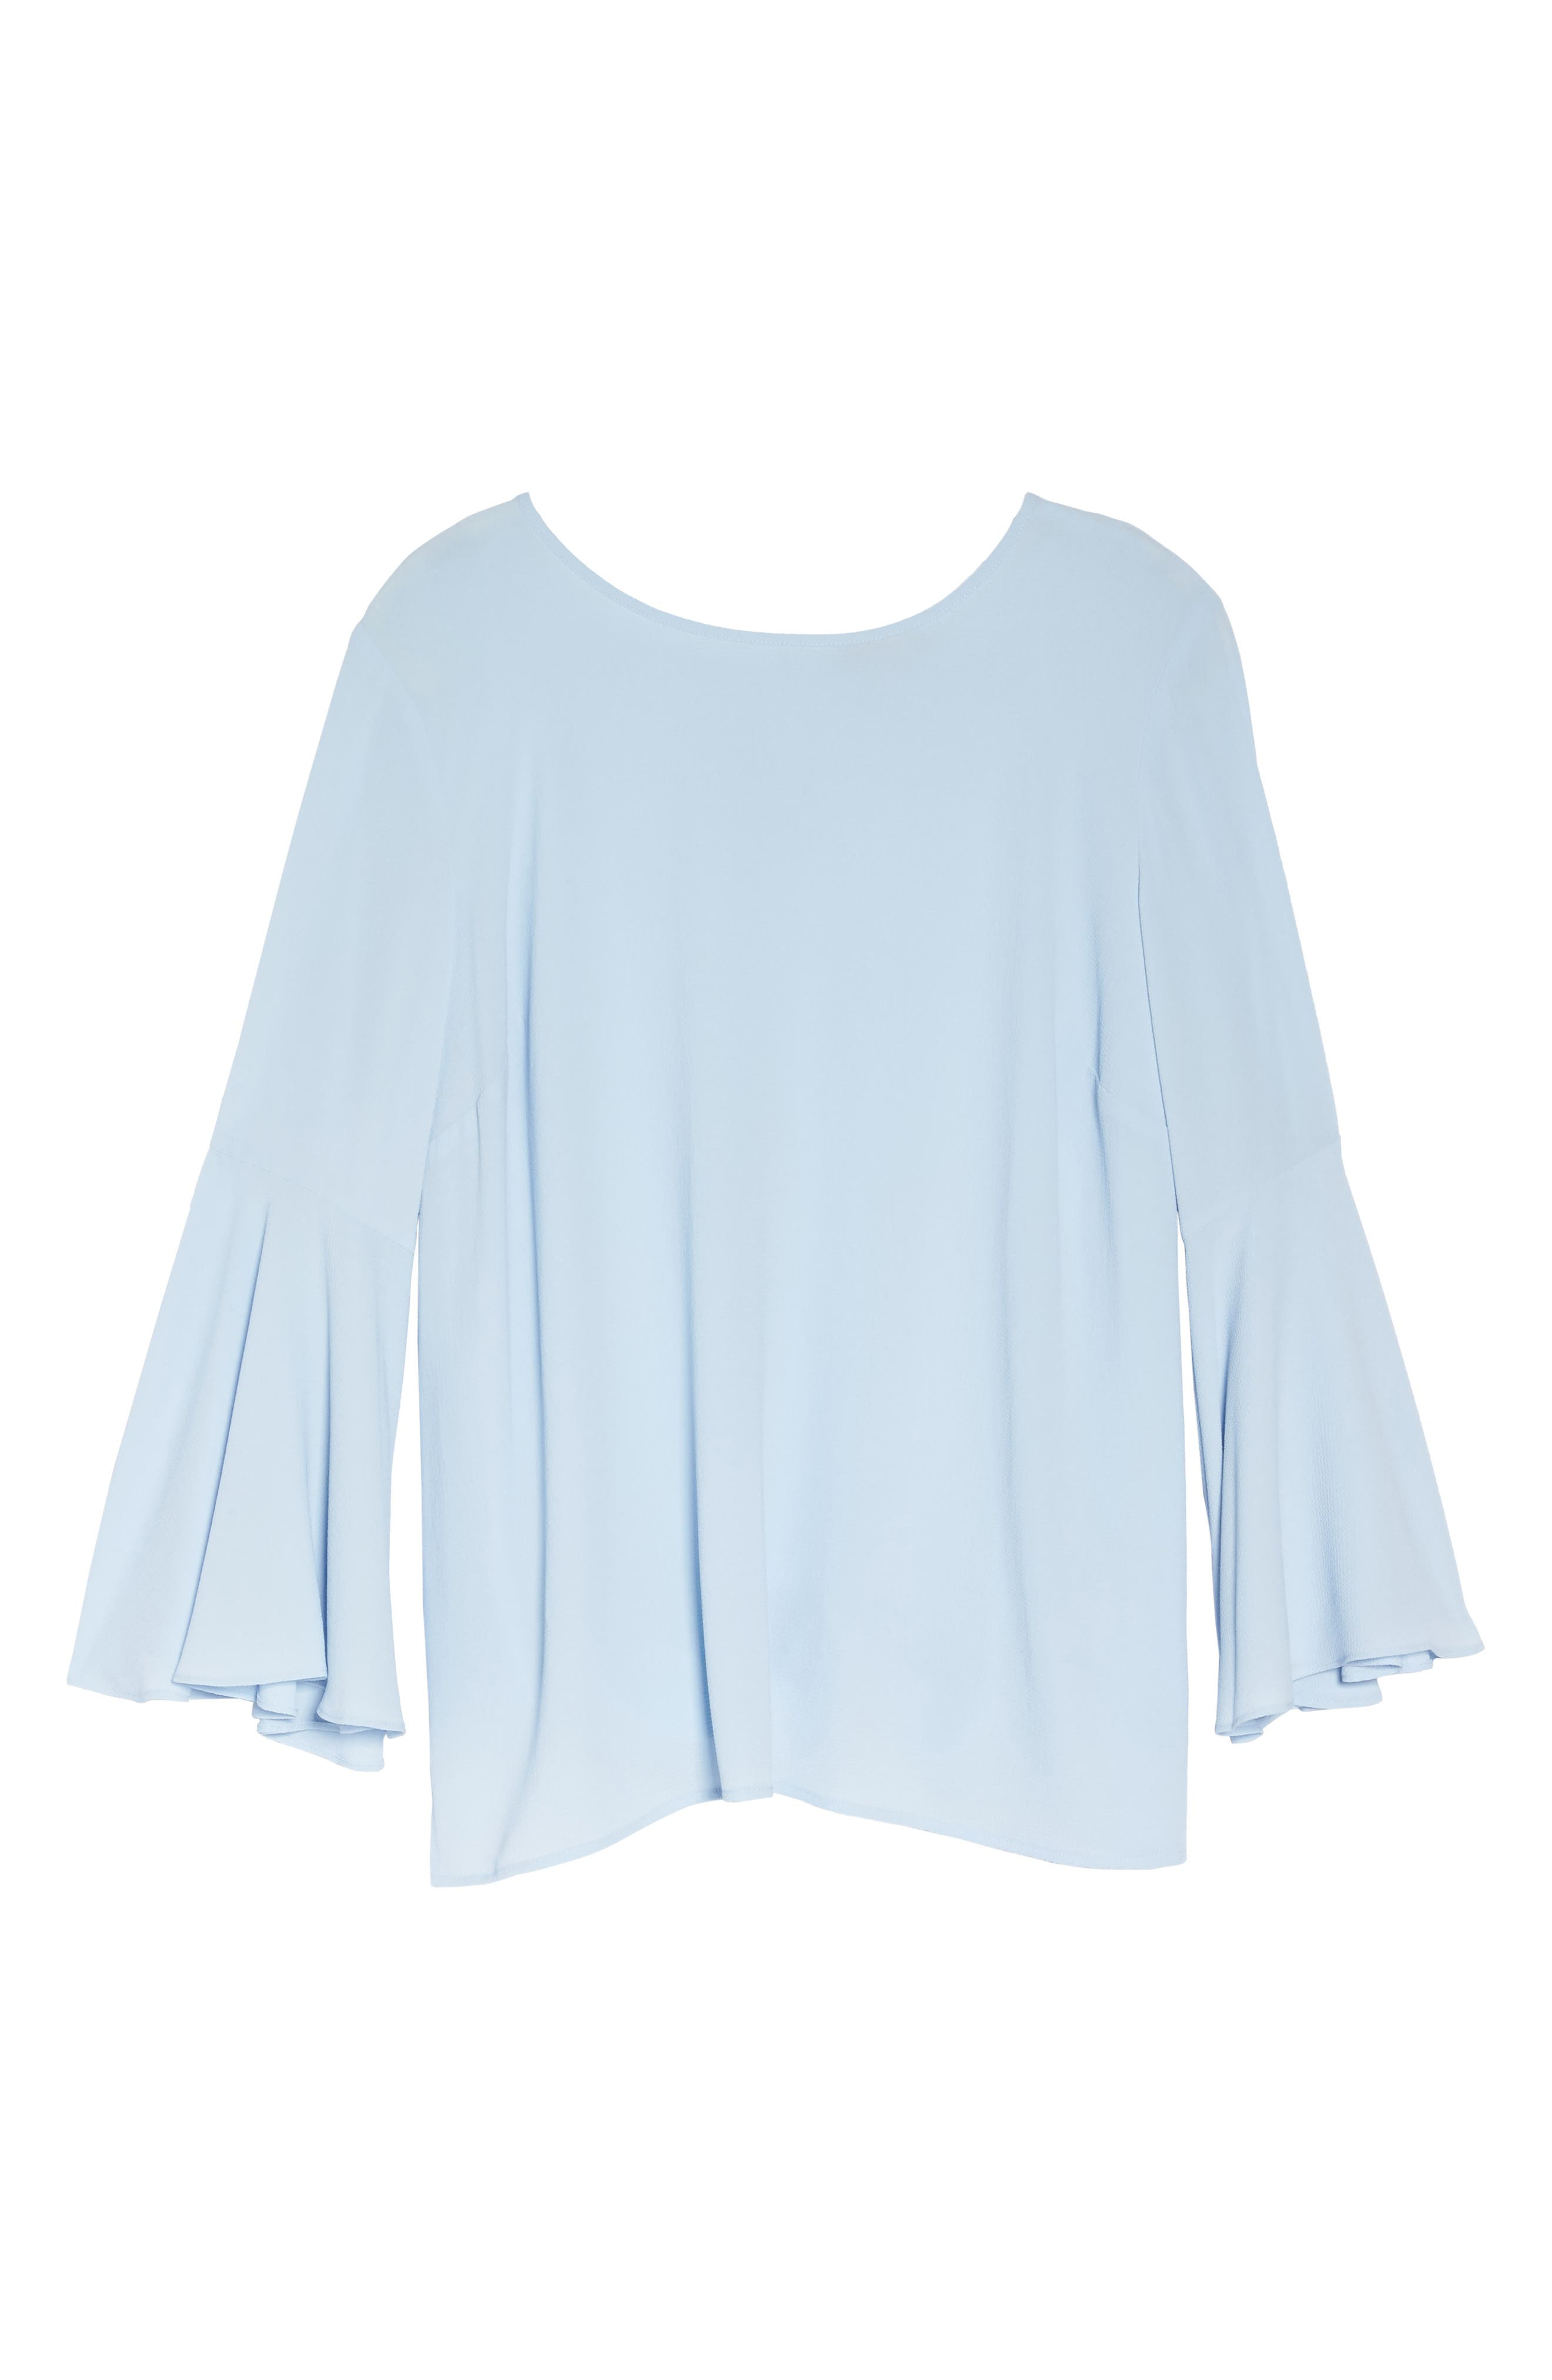 Bell Sleeve Blouse,                             Alternate thumbnail 6, color,                             LIGHT CAMEO BLUE